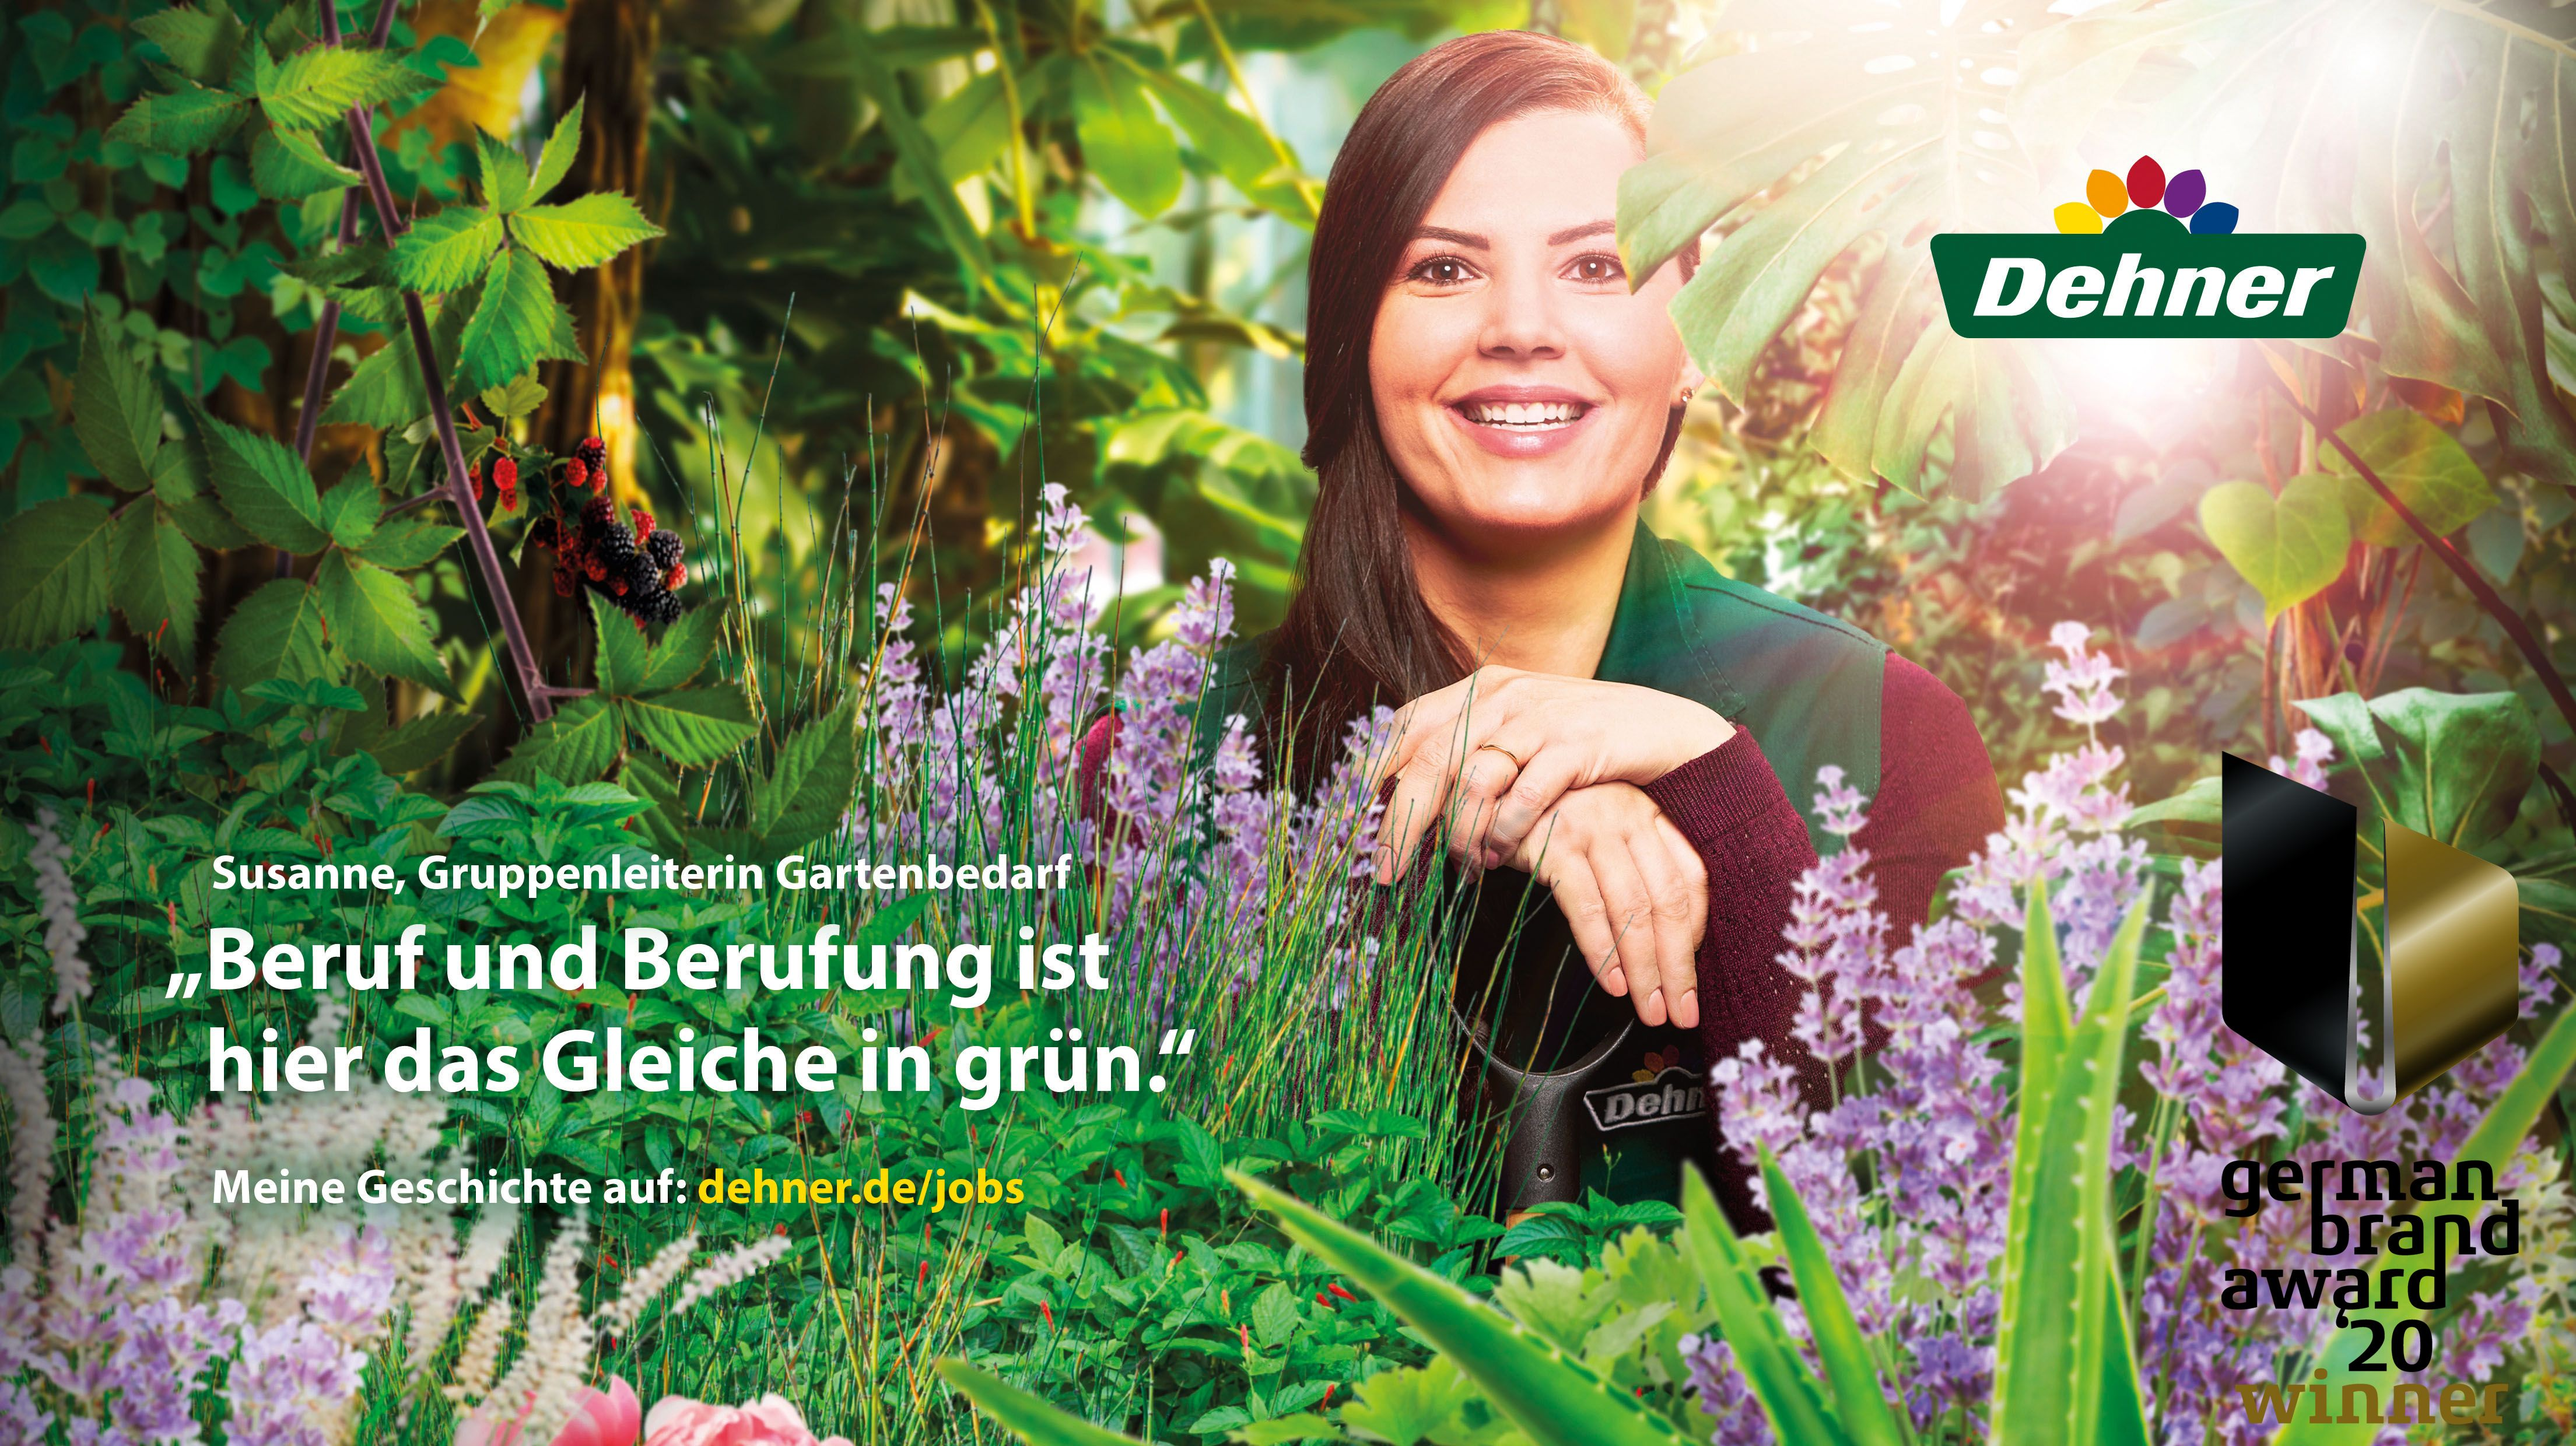 Dehner Is Committed To The Principles Of Offering Quality Experiencing Diversity And Demonstrating Competence In Orde Pflanzen Kaufen Gartenbedarf Pflanzen